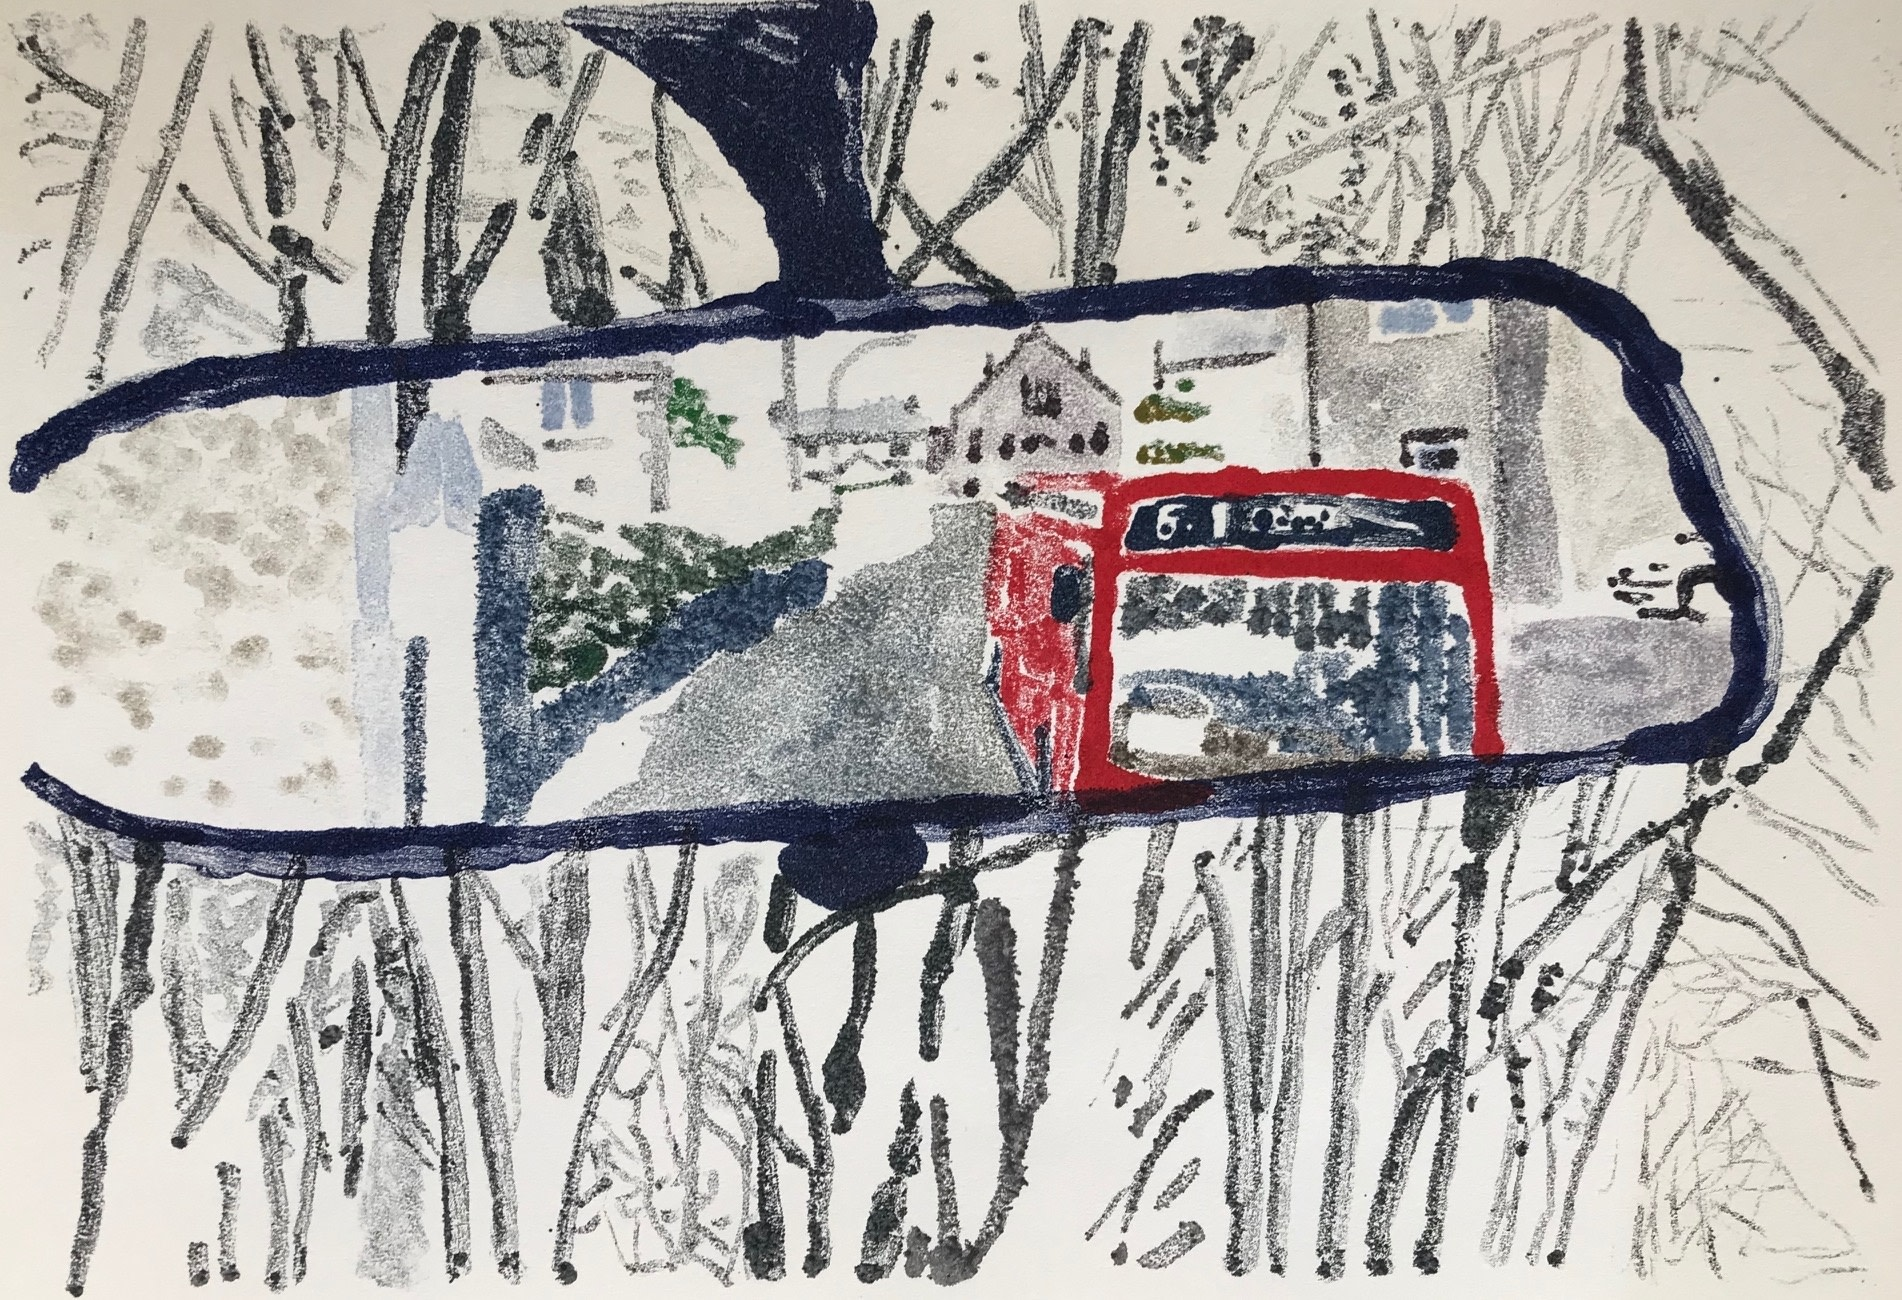 "<span class=""link fancybox-details-link""><a href=""/exhibitions/17/works/image_standalone687/"">View Detail Page</a></span><p><strong>Juliet Goodden</strong></p><p>Bus out of Town</p><p>monoprint, oil on paper, 1/1</p><p>35 x 45cm</p><p>£400 framed</p><p>£300 unframed</p>"